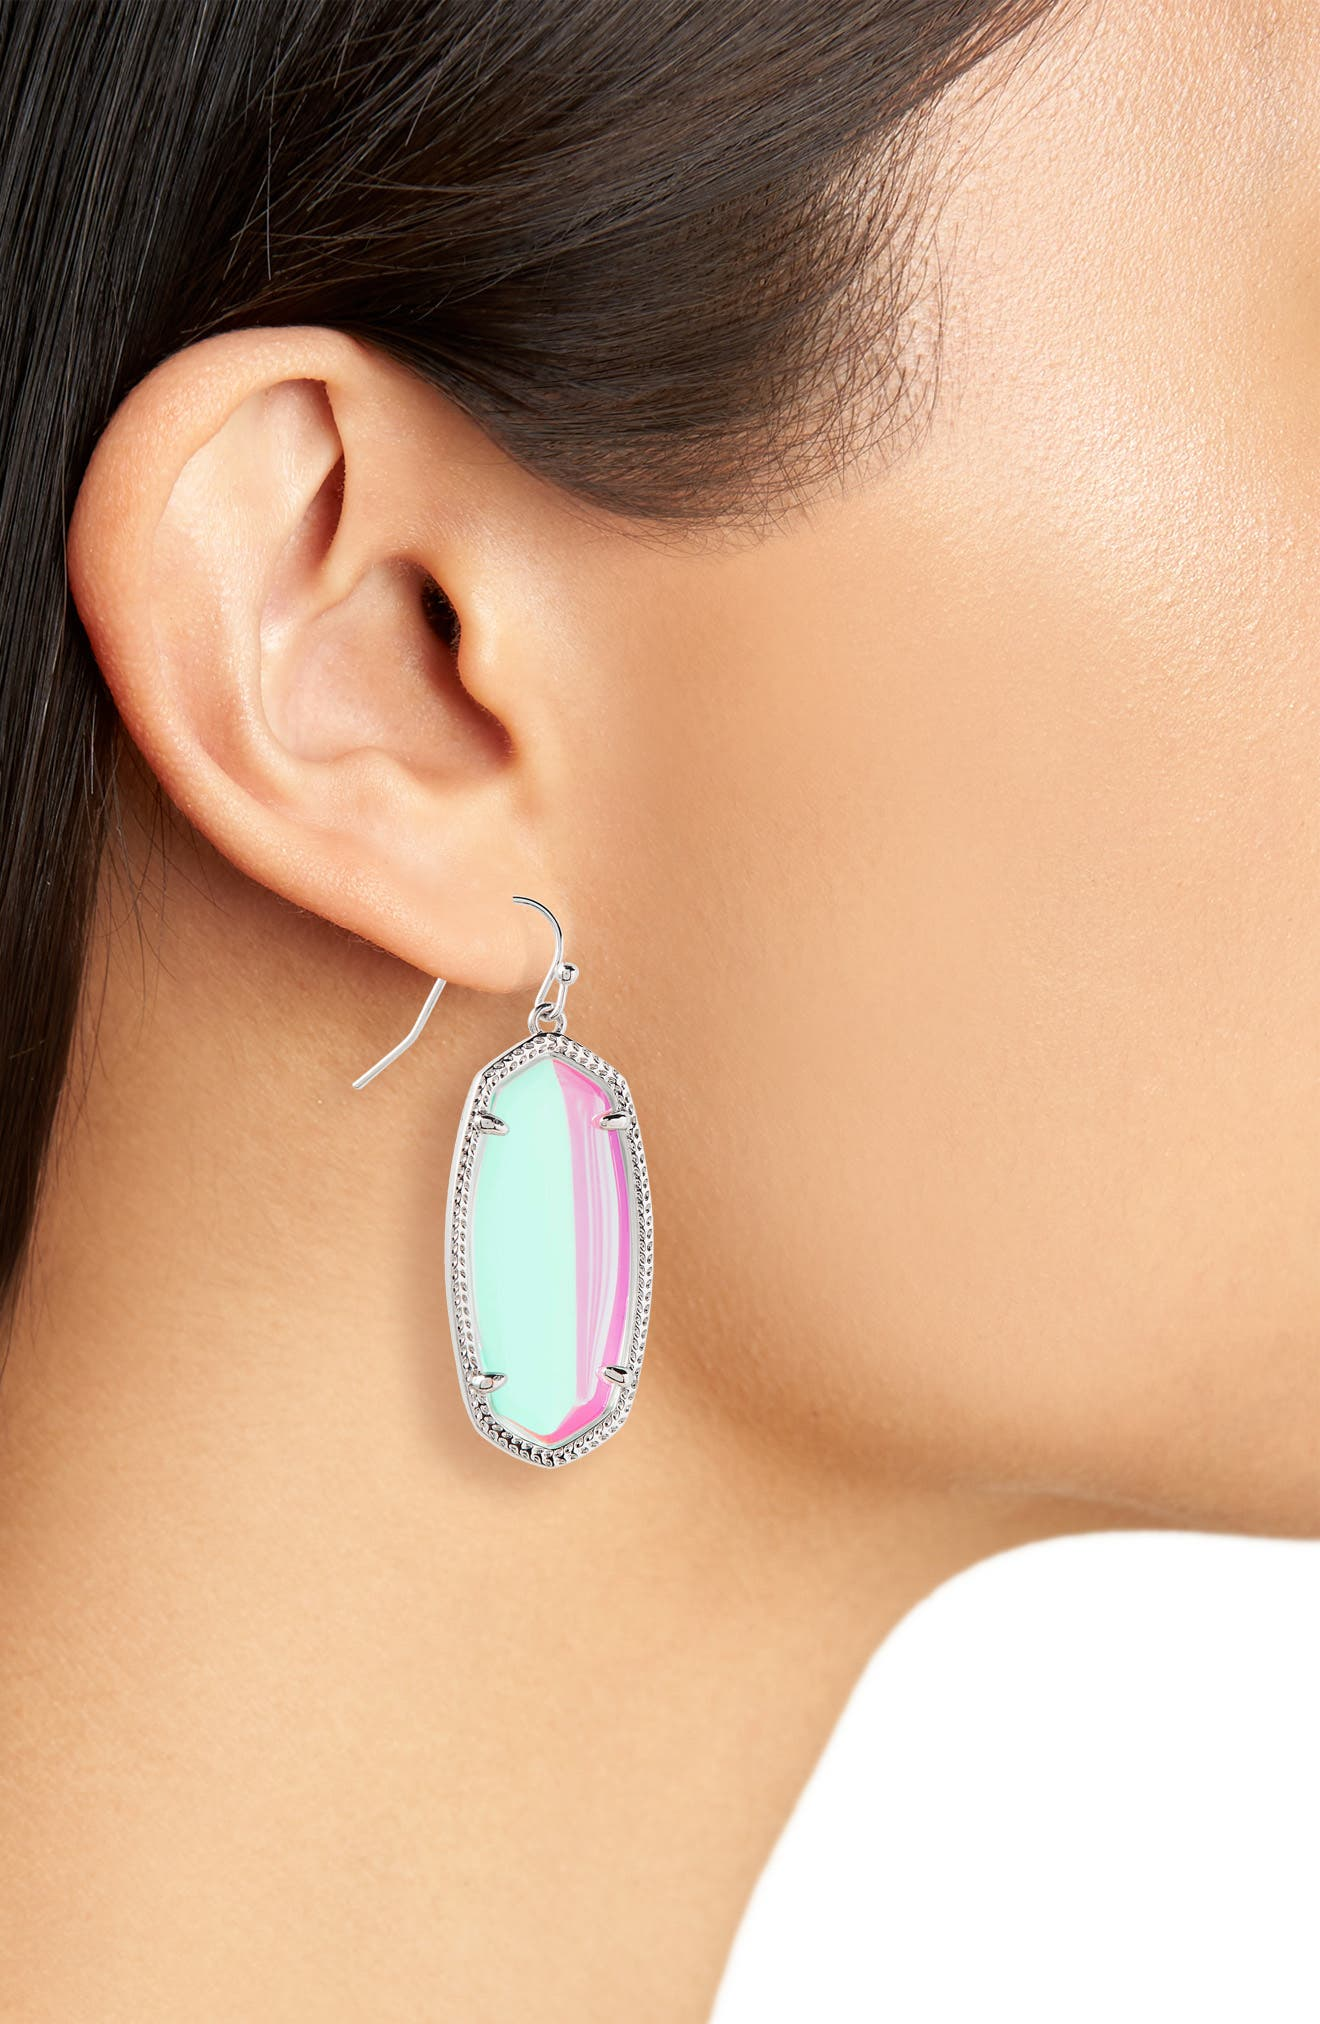 Elle Drop Earrings,                             Alternate thumbnail 3, color,                             DICHROIC GLASS/ SILVER